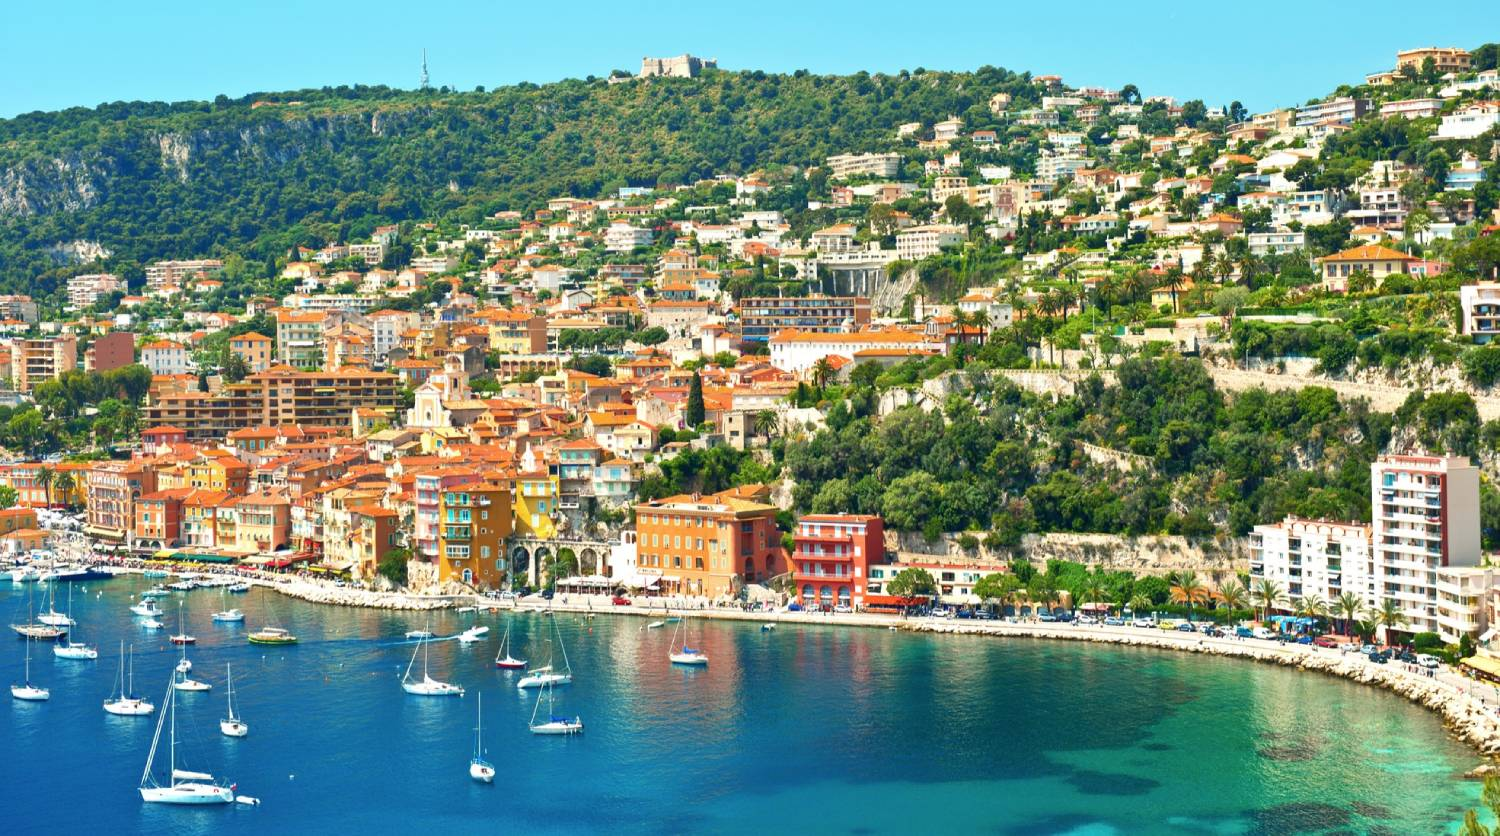 French Riviera (Cote d'Azur) - The Best Places To Visit In France